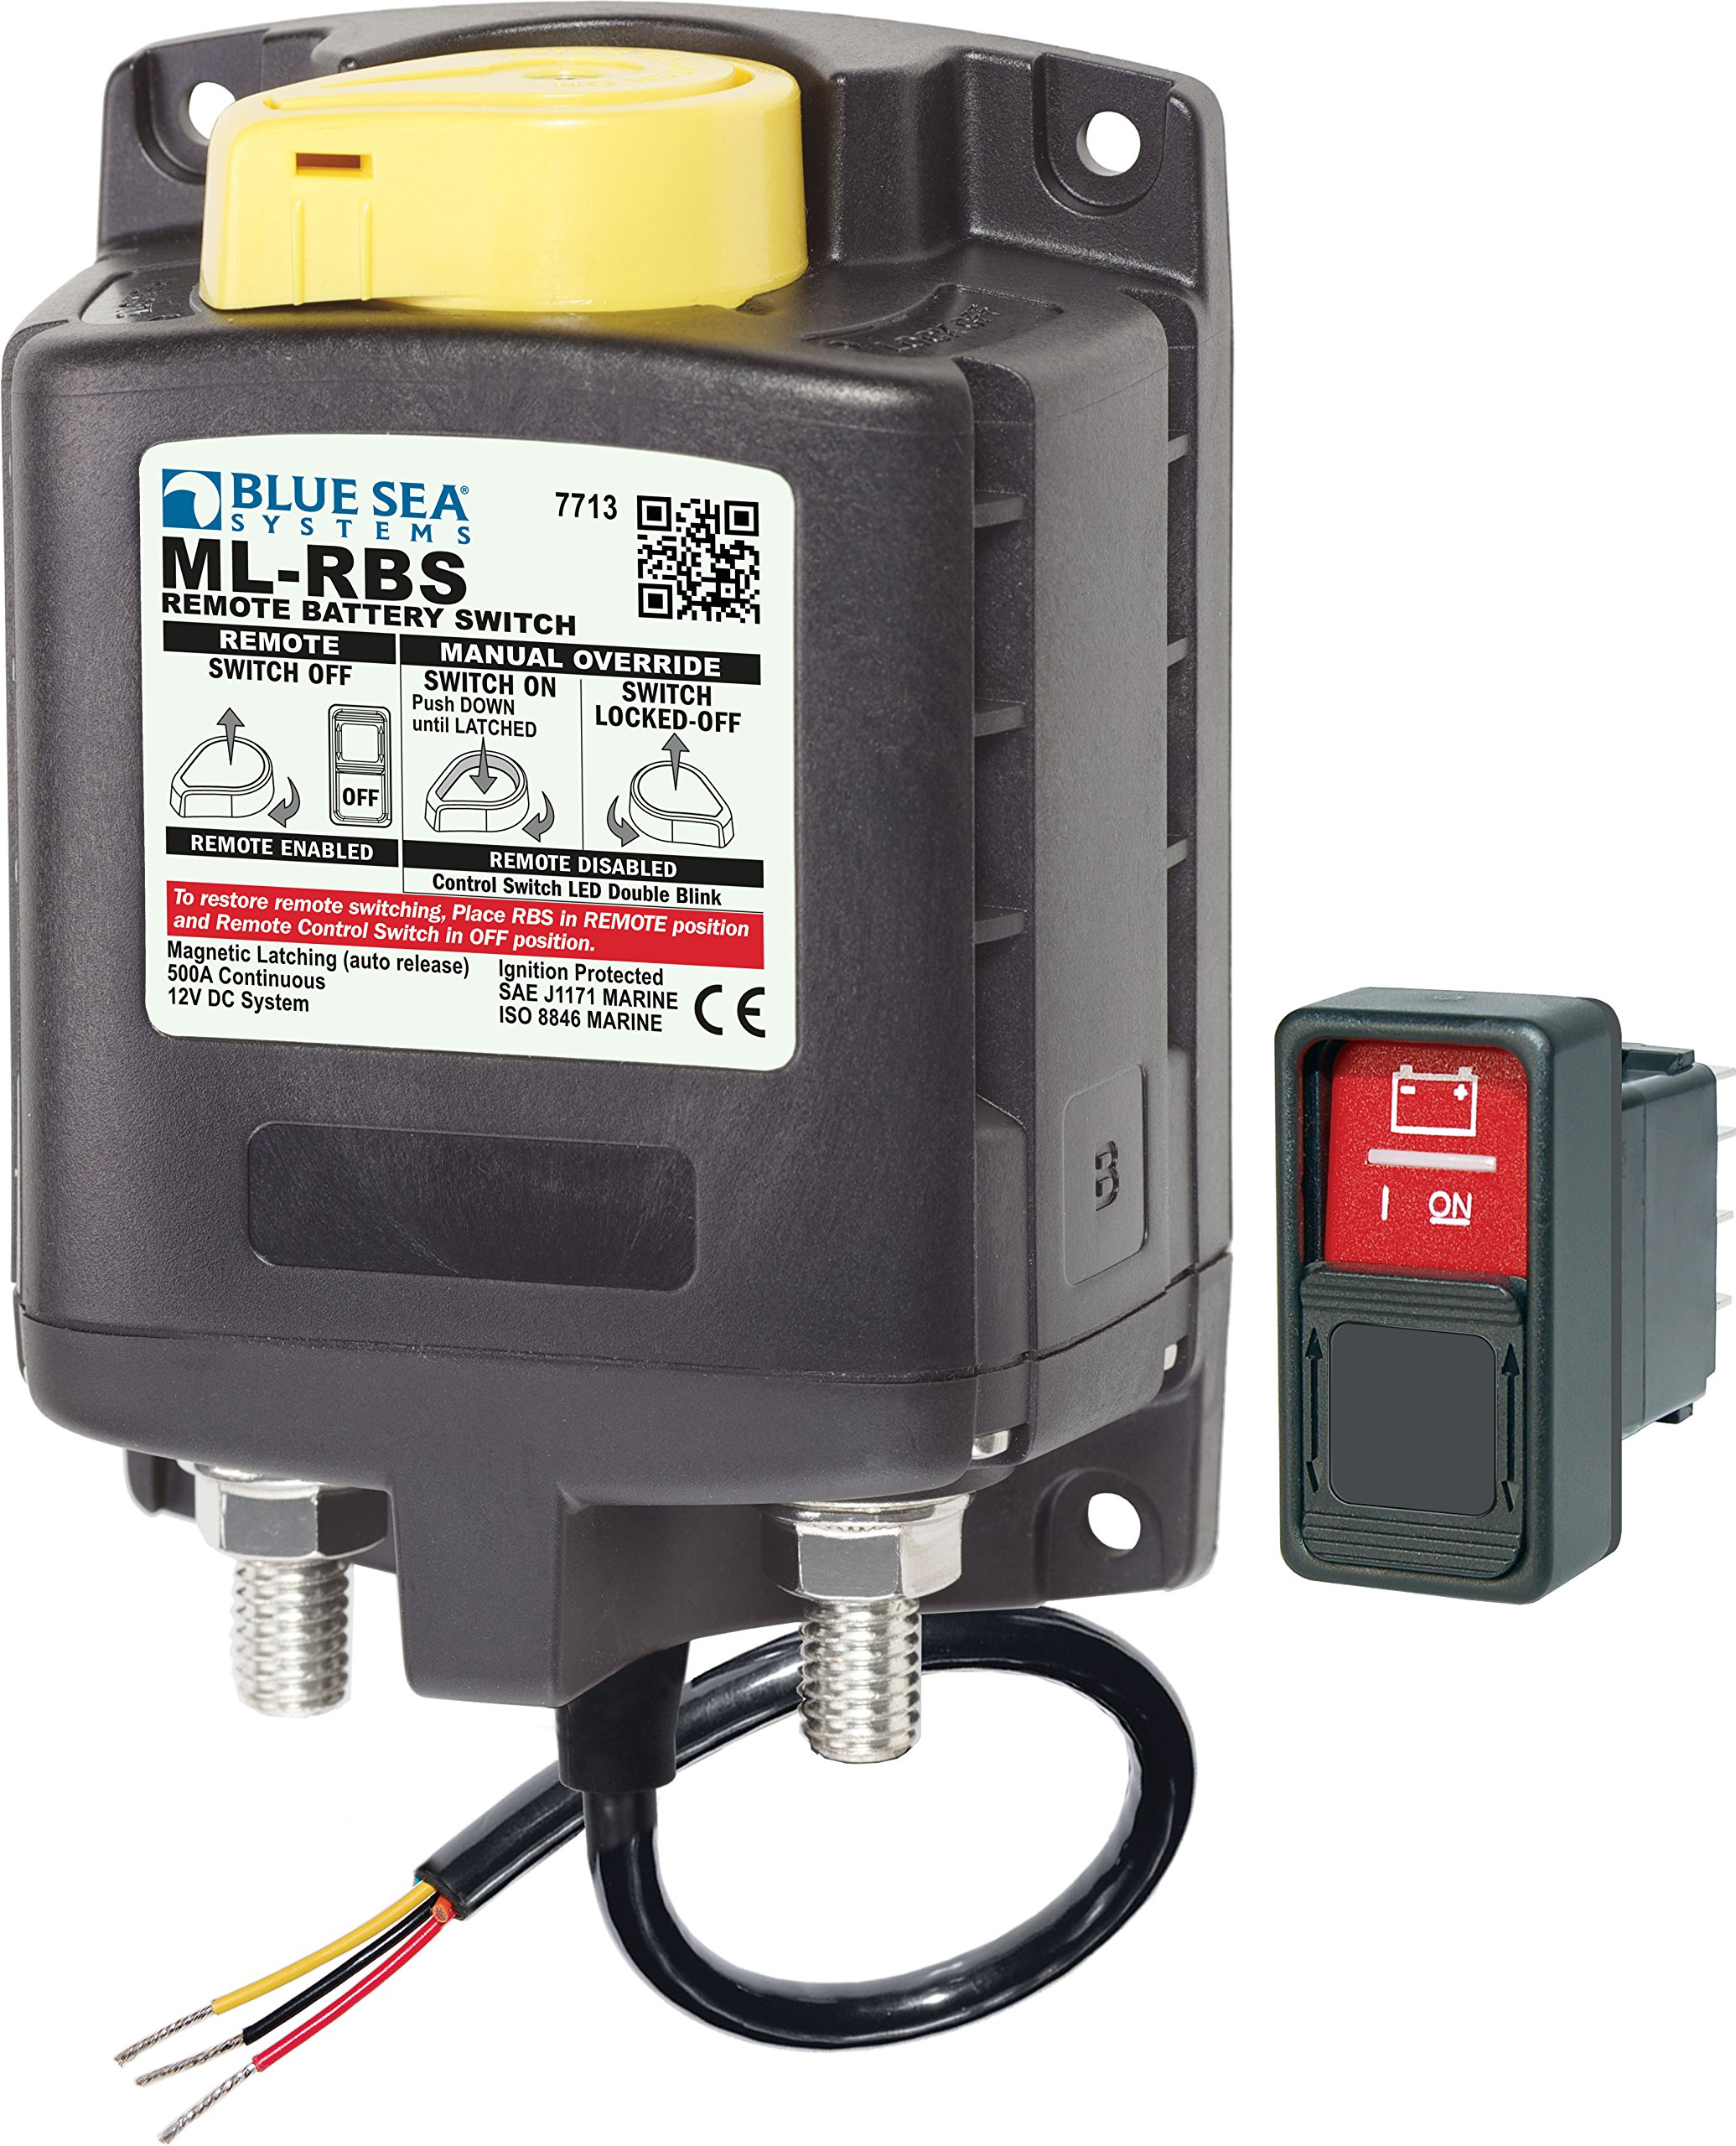 ML-RBS Remote Battery Switch with Manual Control Auto-Release - 12V by Blue Sea Systems (Image #1)